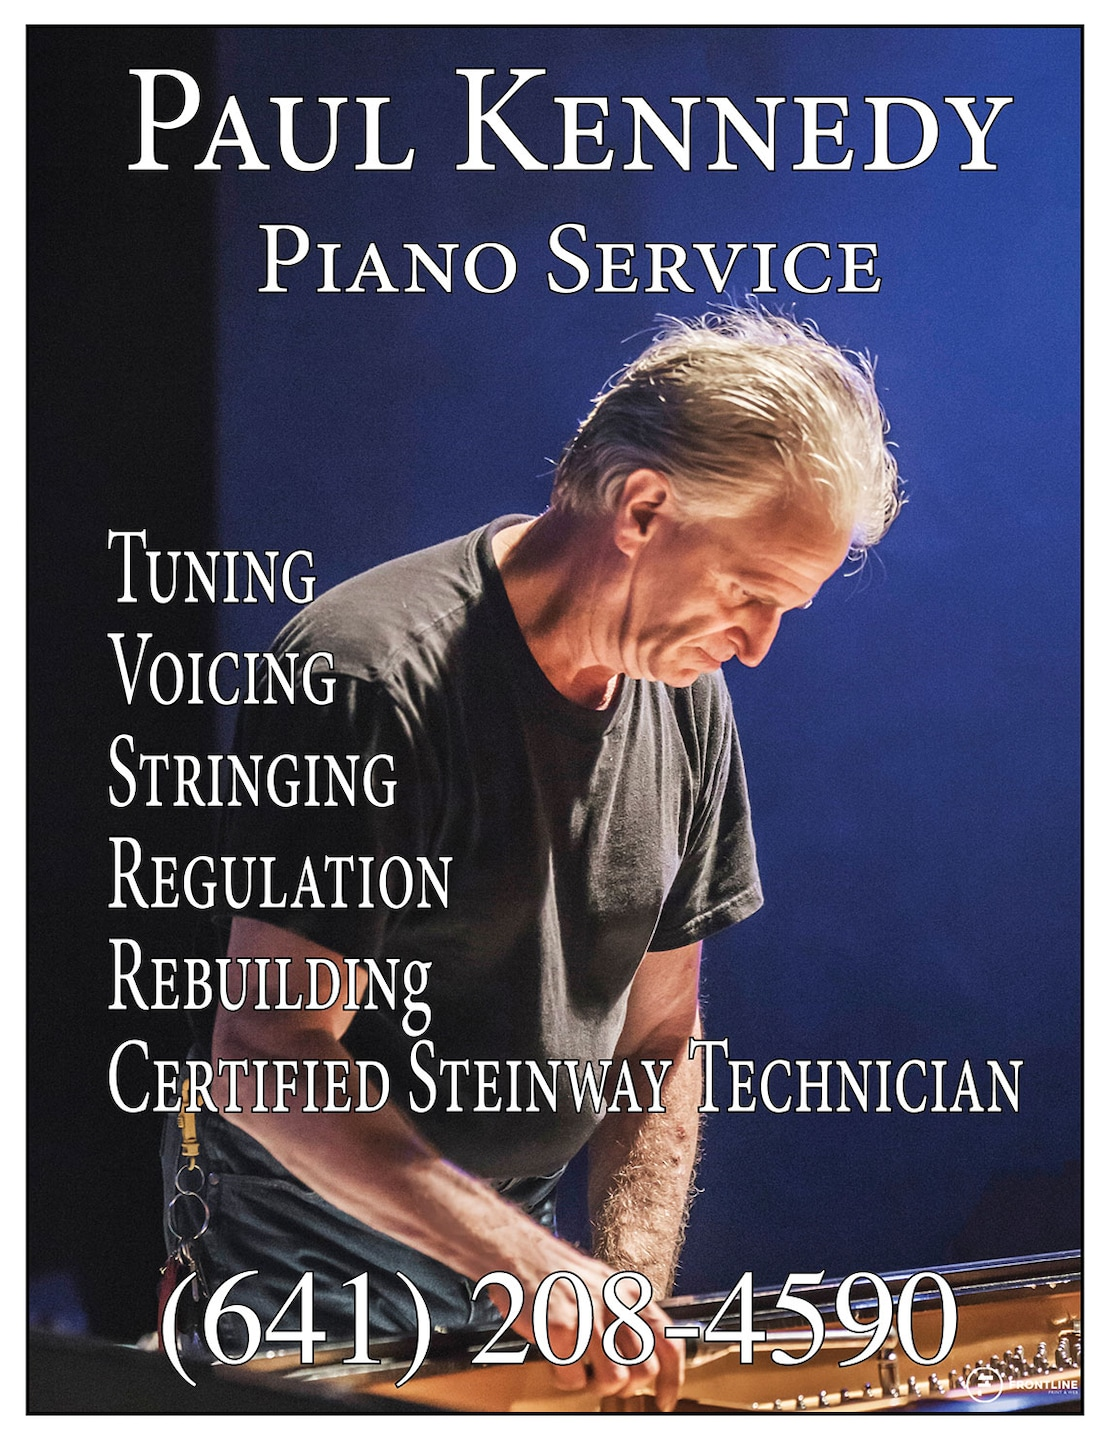 Paul Kennedy's Pro Piano Tuning And Repair Service